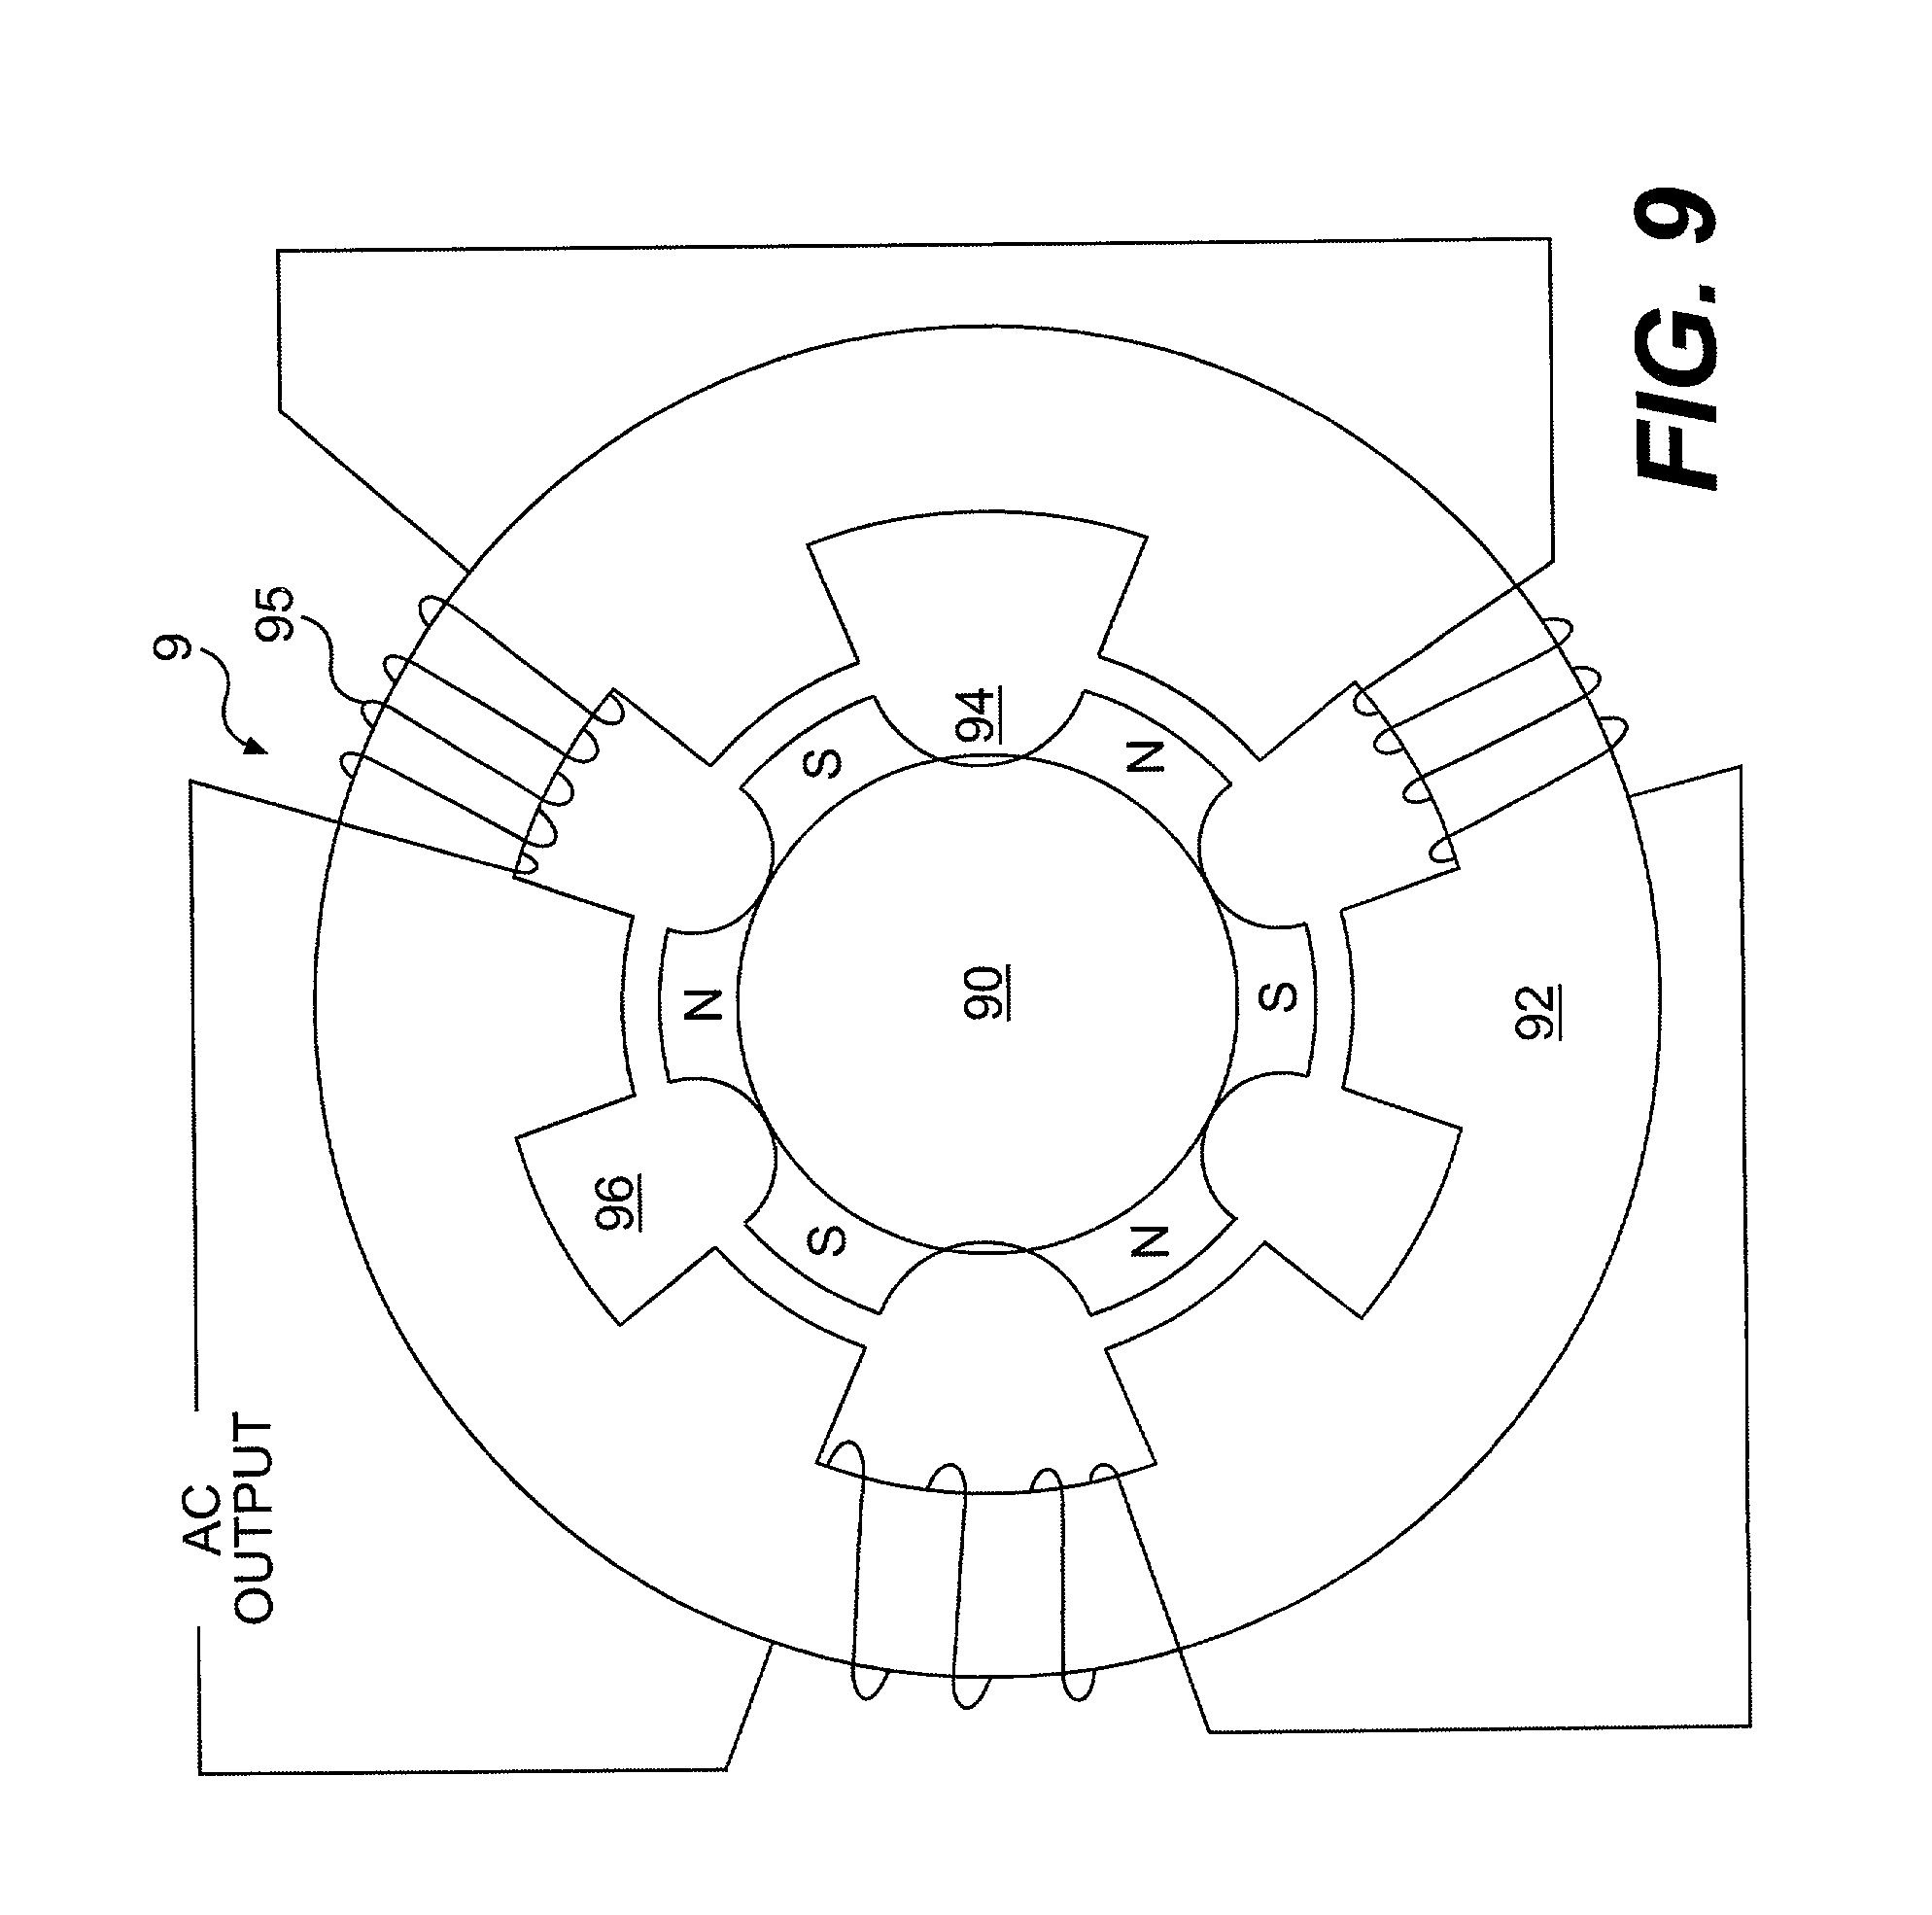 patent us7538524 - generators and transformers with toroidally wound stator winding